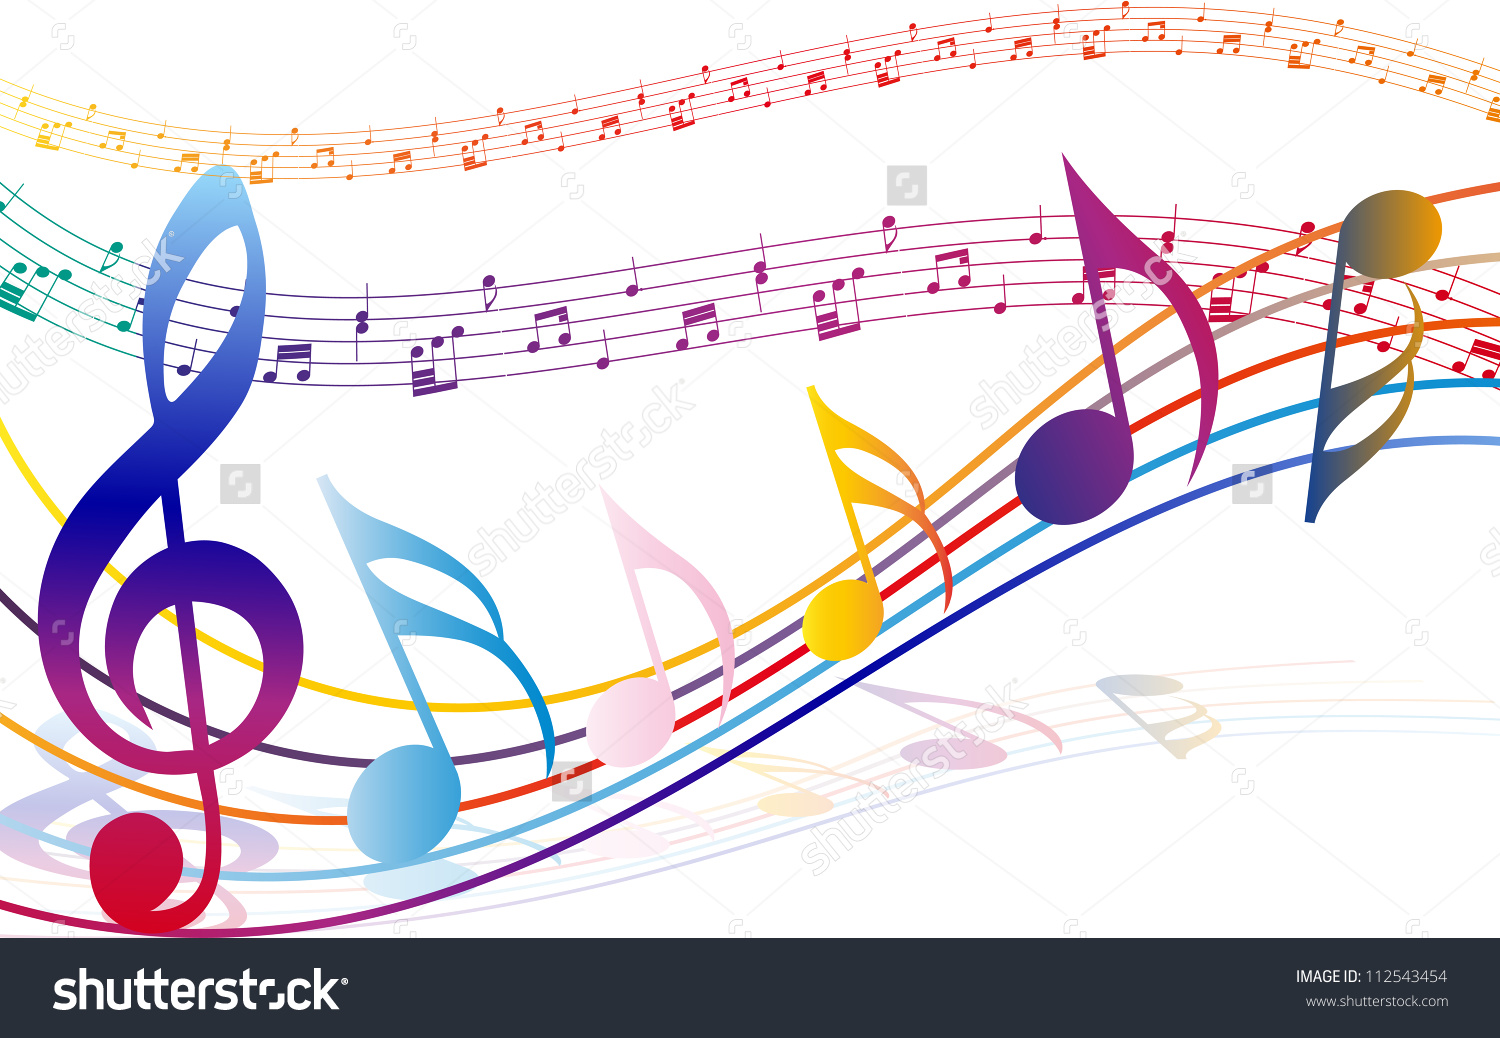 1500x1038 Colorful Music Notes Clipart Transparent